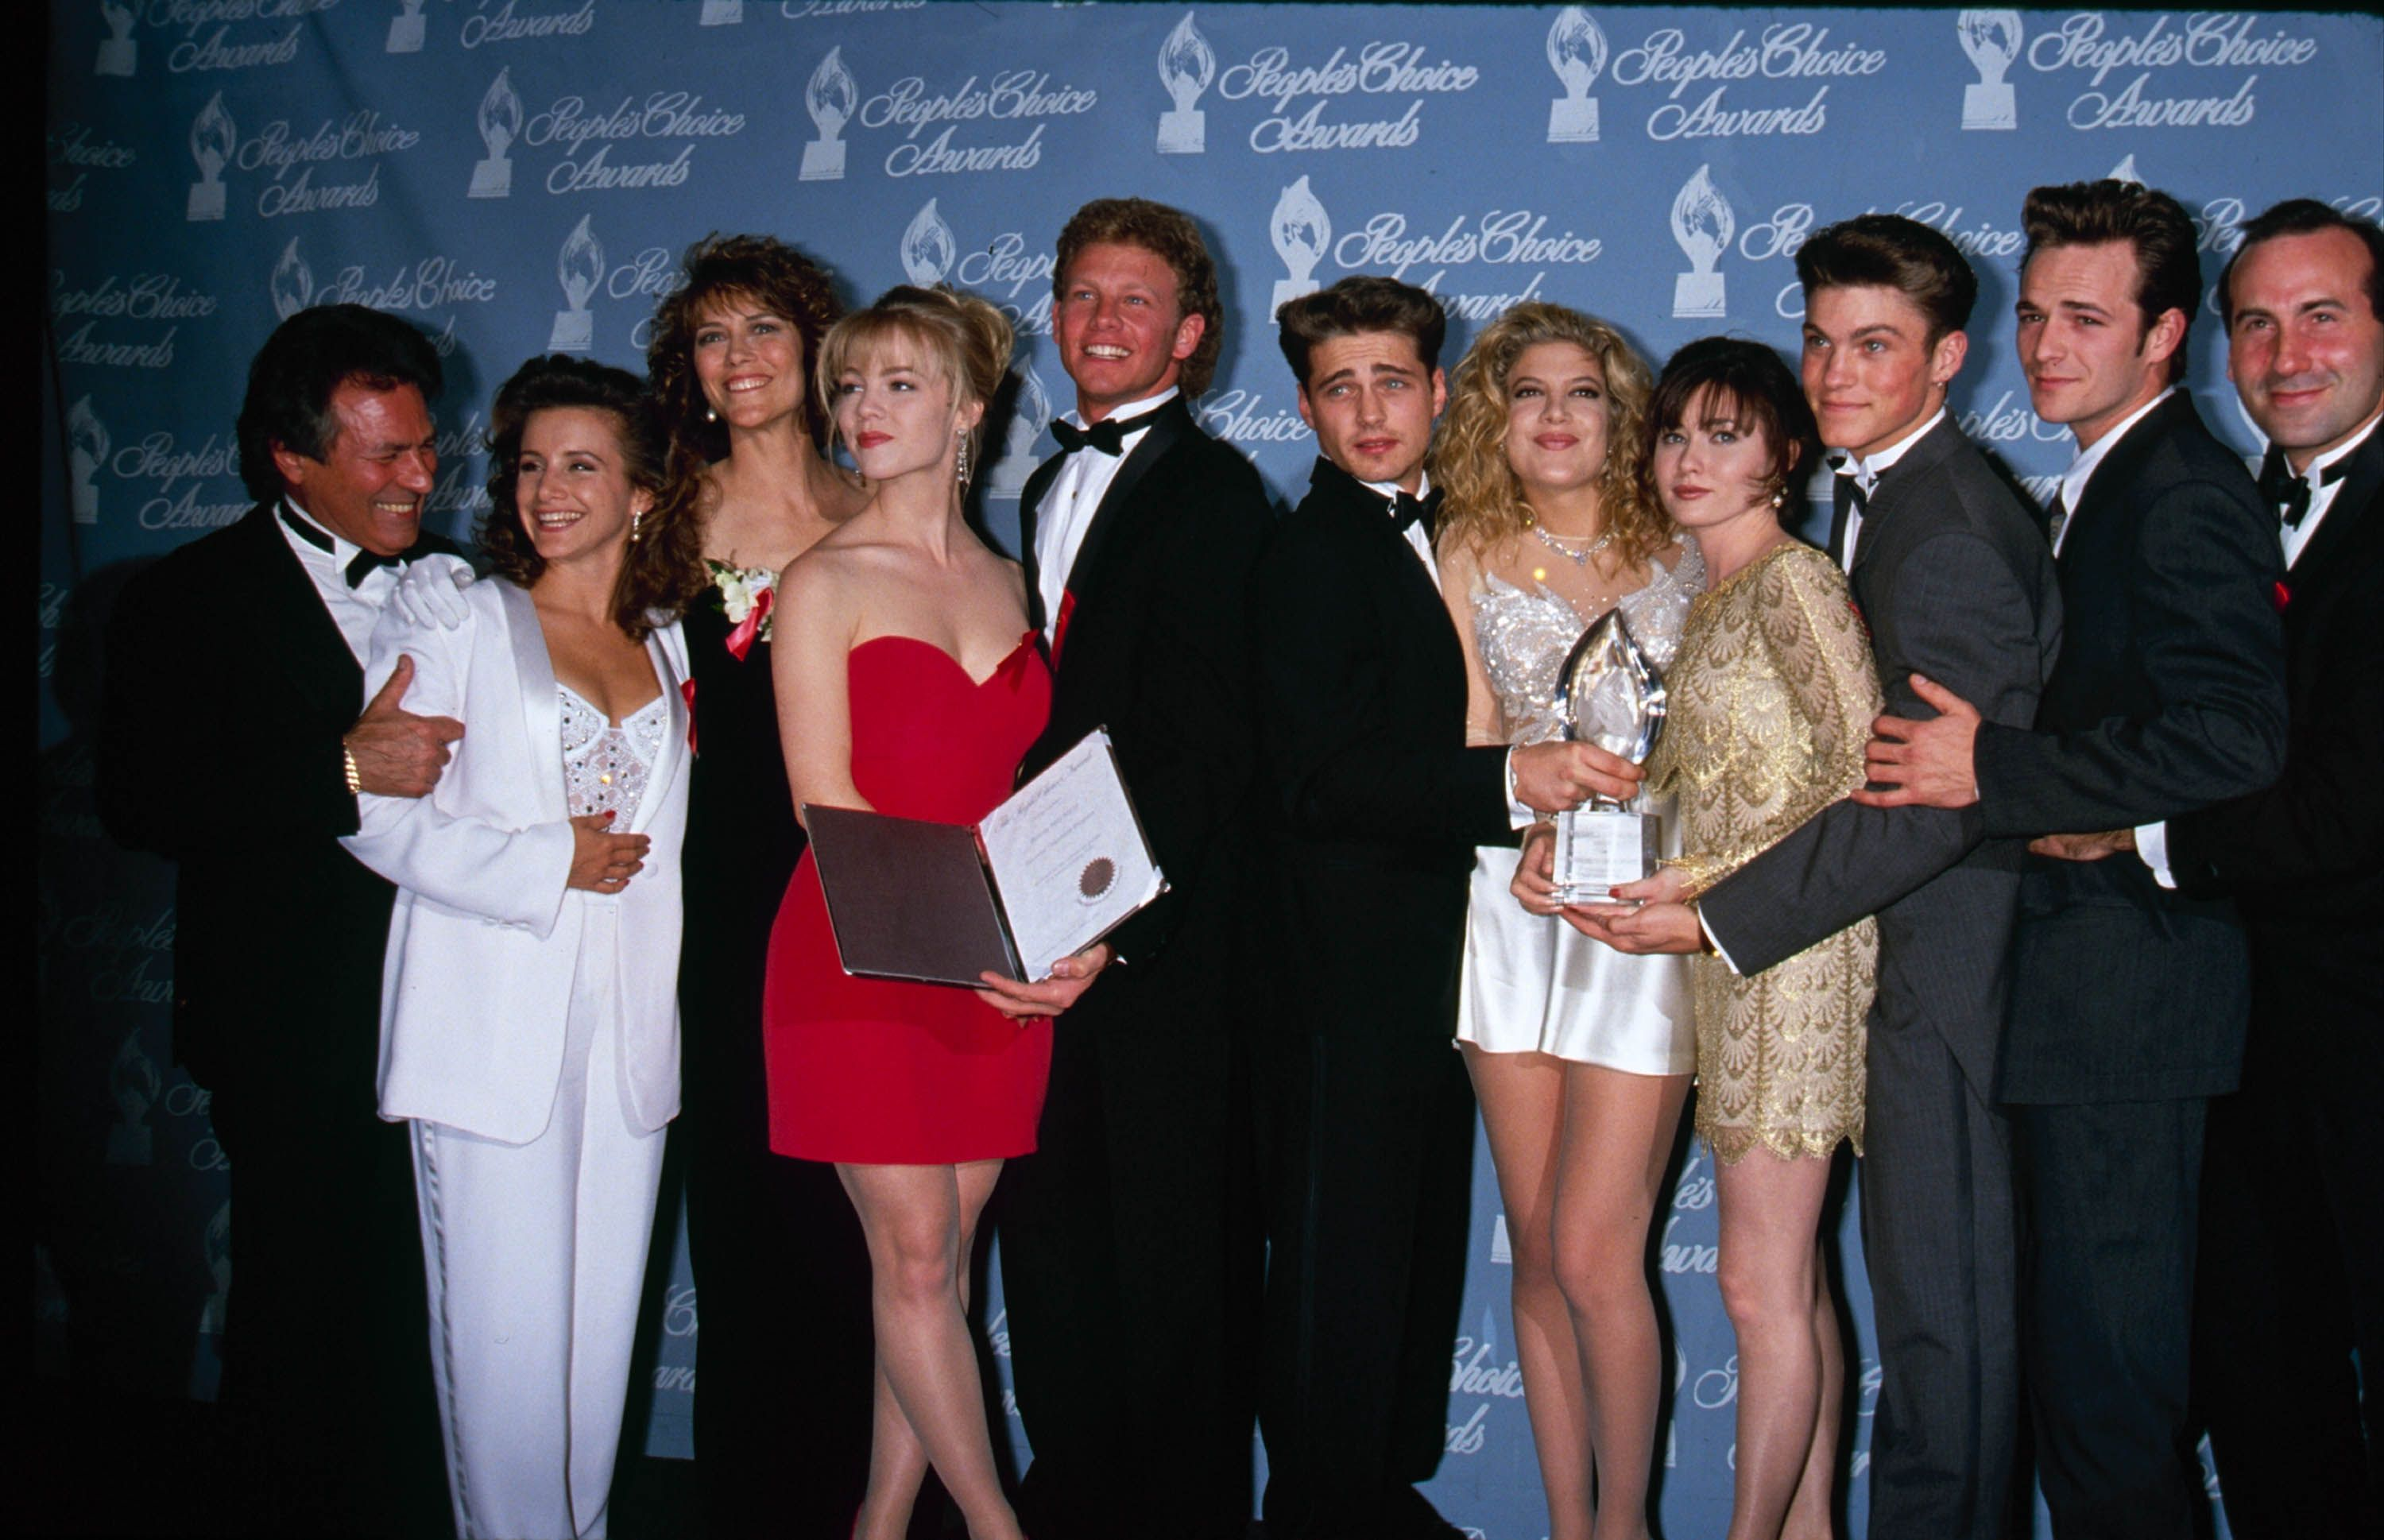 Shannen Doherty, Jennie Garth, Ian Ziering, Jason Priestley, Tori Spelling and Perry of Beverly Hills 90210 at the People's Choice Awards in March 1992.